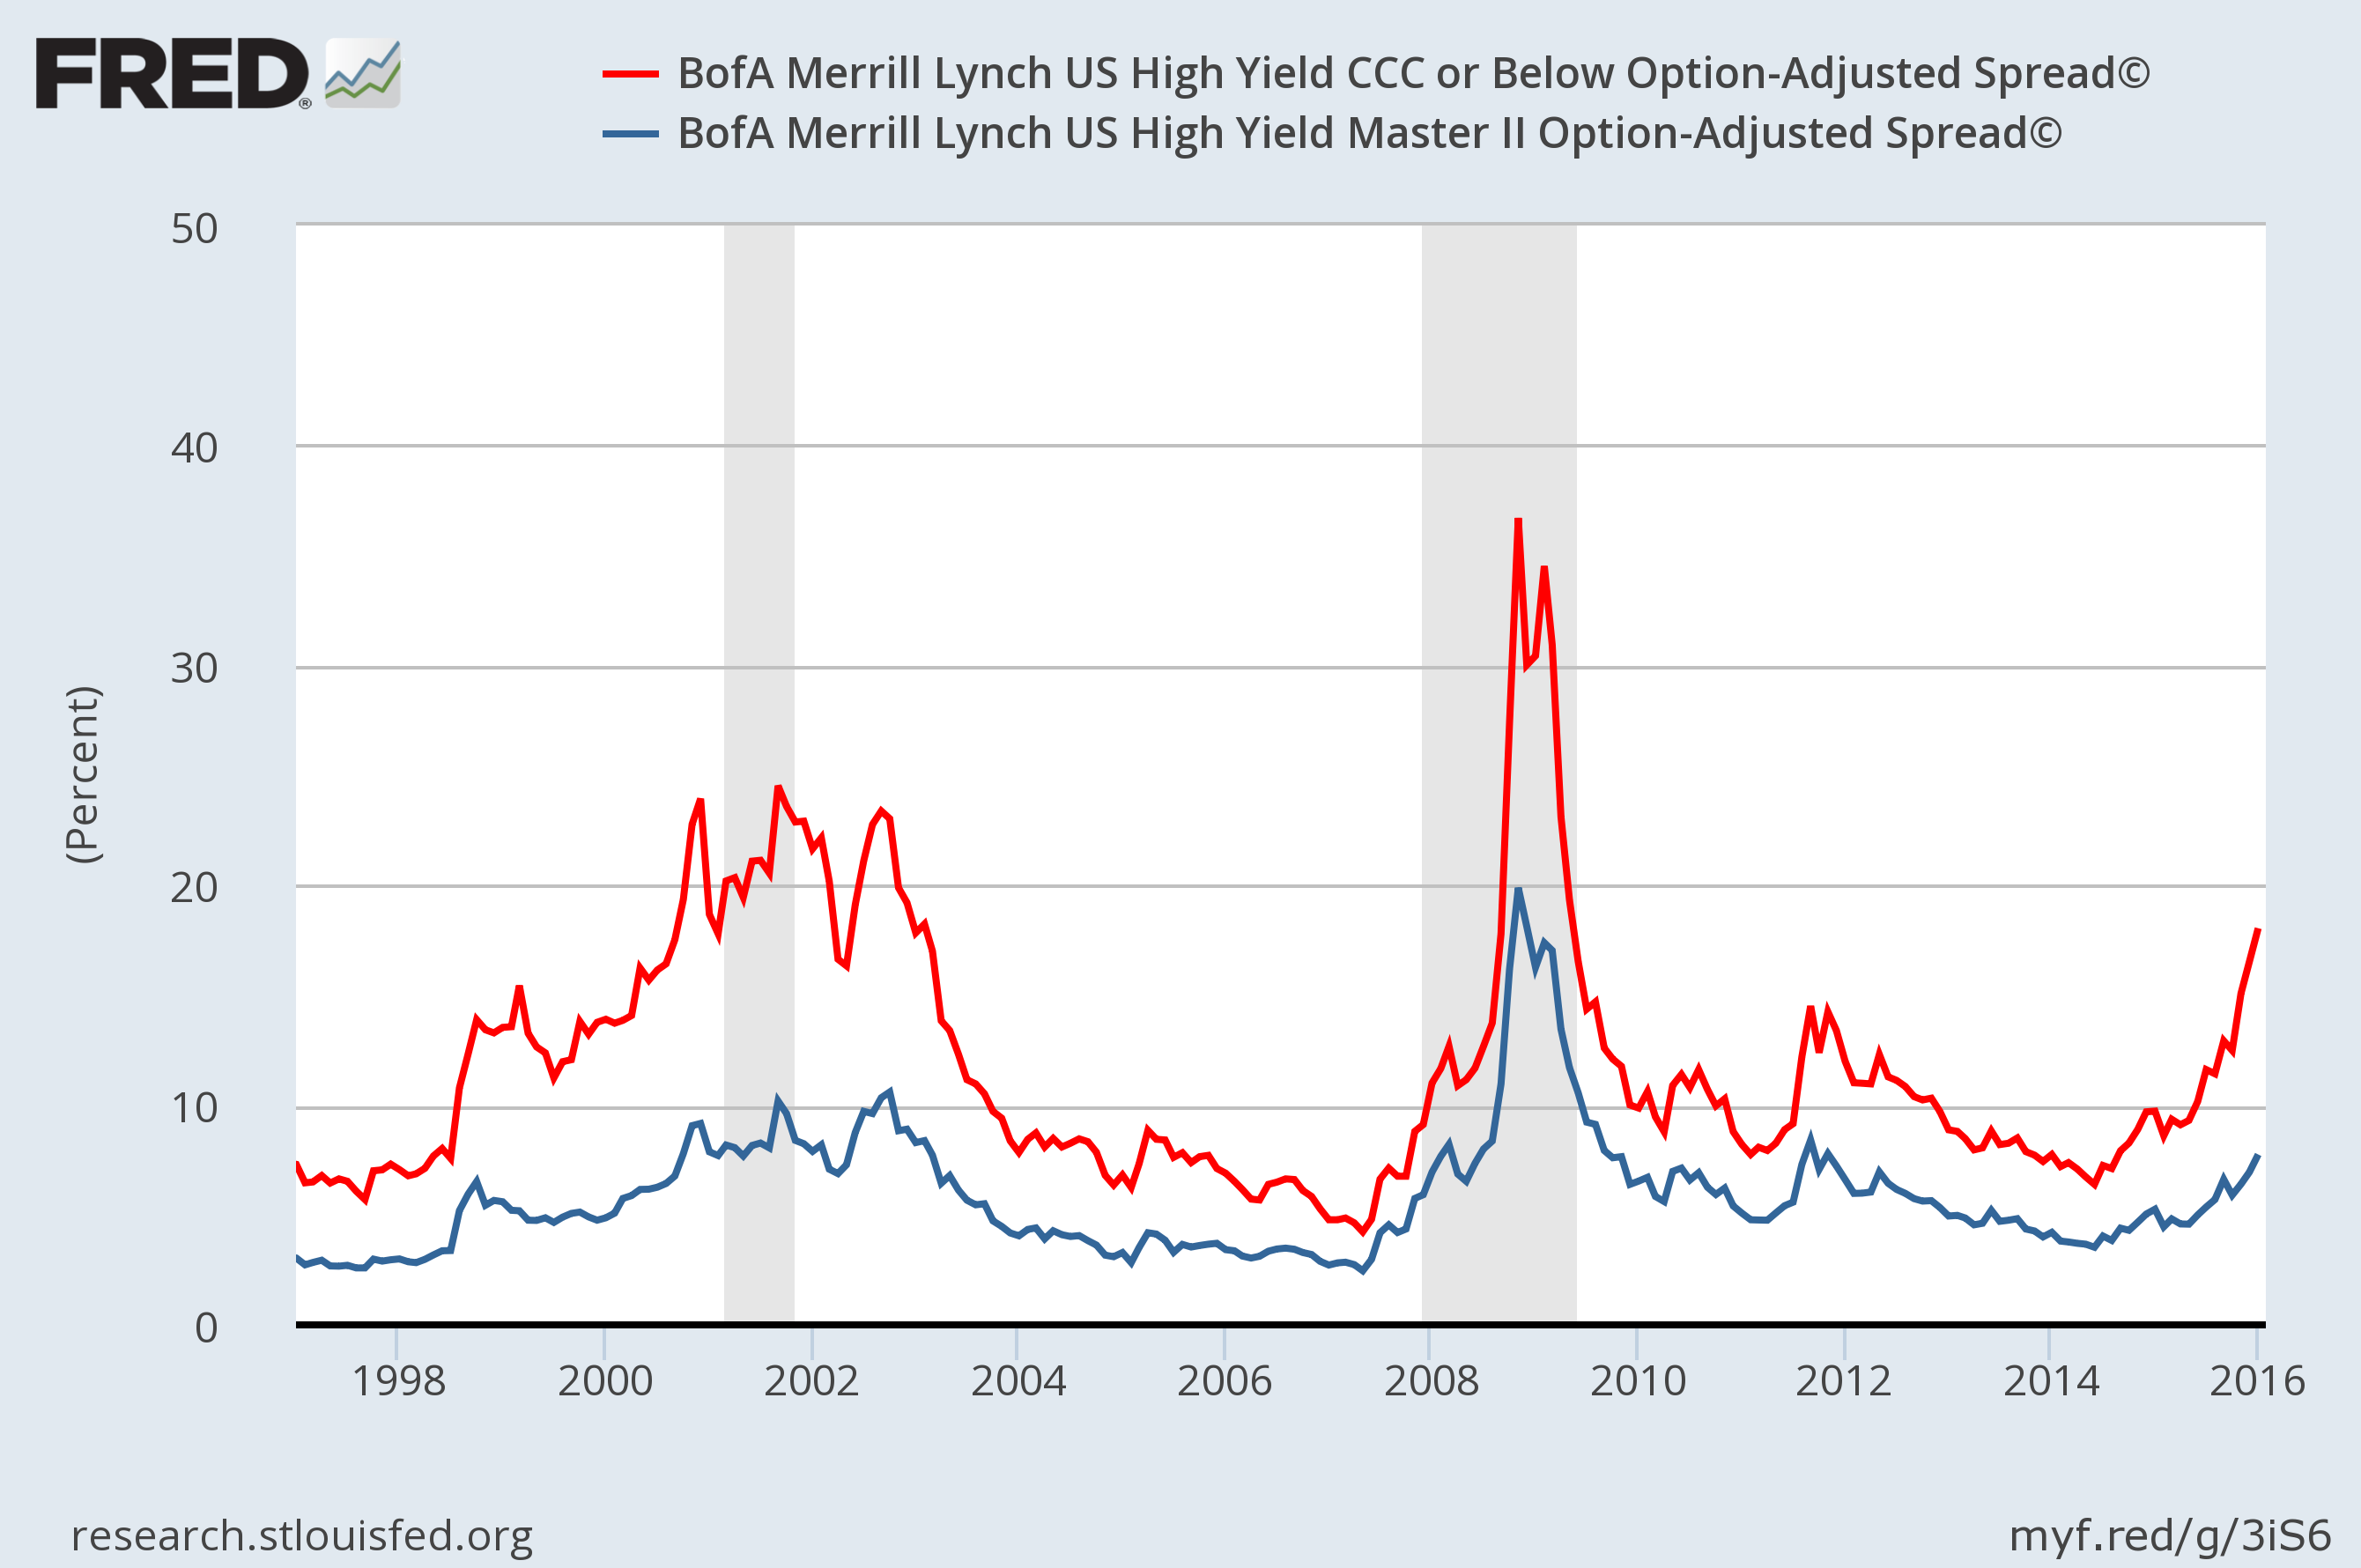 BofA Merrill Lynch US High Yield Master II Option-Adjusted Spread AND BofA Merrill Lynch US High Yield CCC or Below Option-Adjusted Spread Source: FRED Economic Data